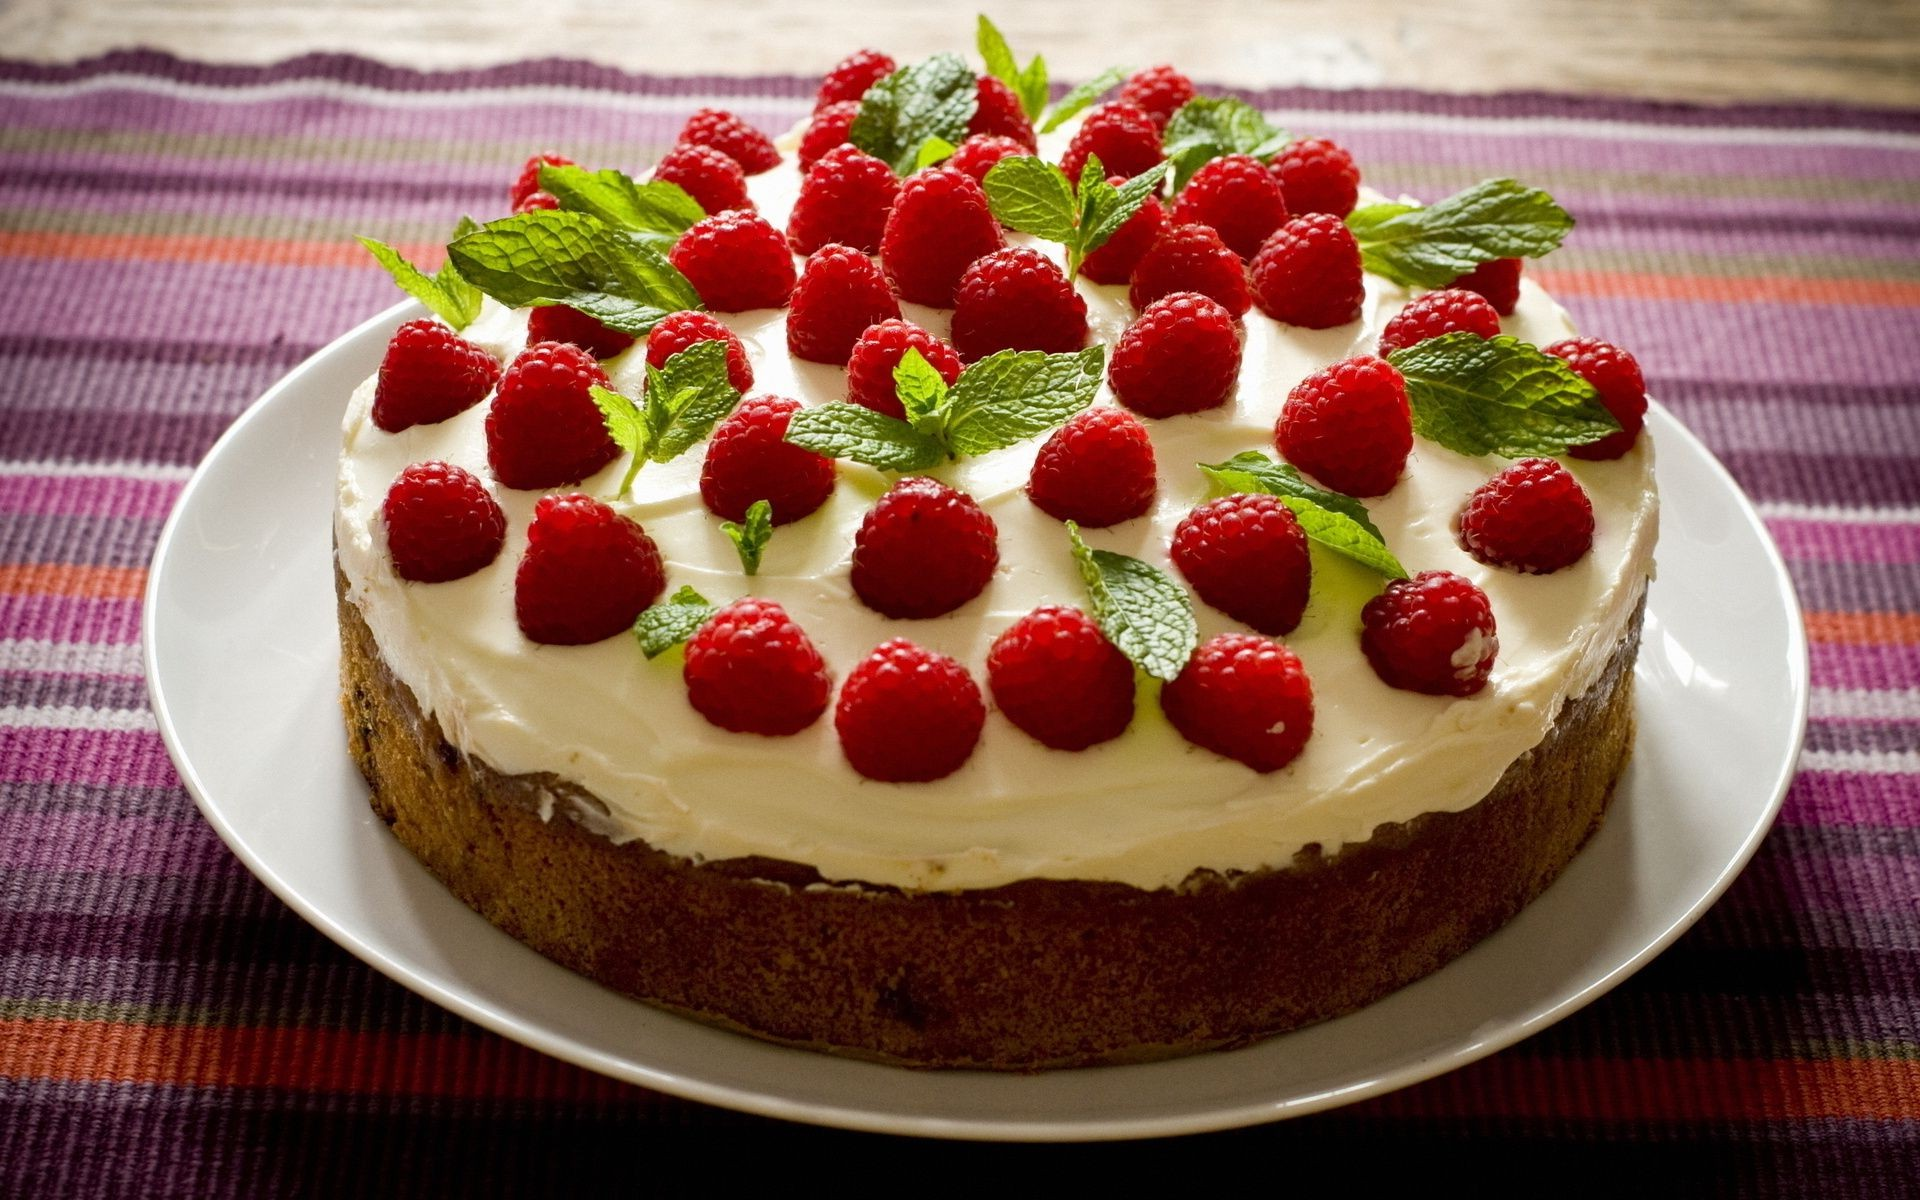 cake The definition of cake is a sweet dessert made from flour, eggs, sugar and other ingredients that is round or square and that is baked, or a flat mass of food that is baked or fried to form into a hard mass or a crust solidify or encrust.